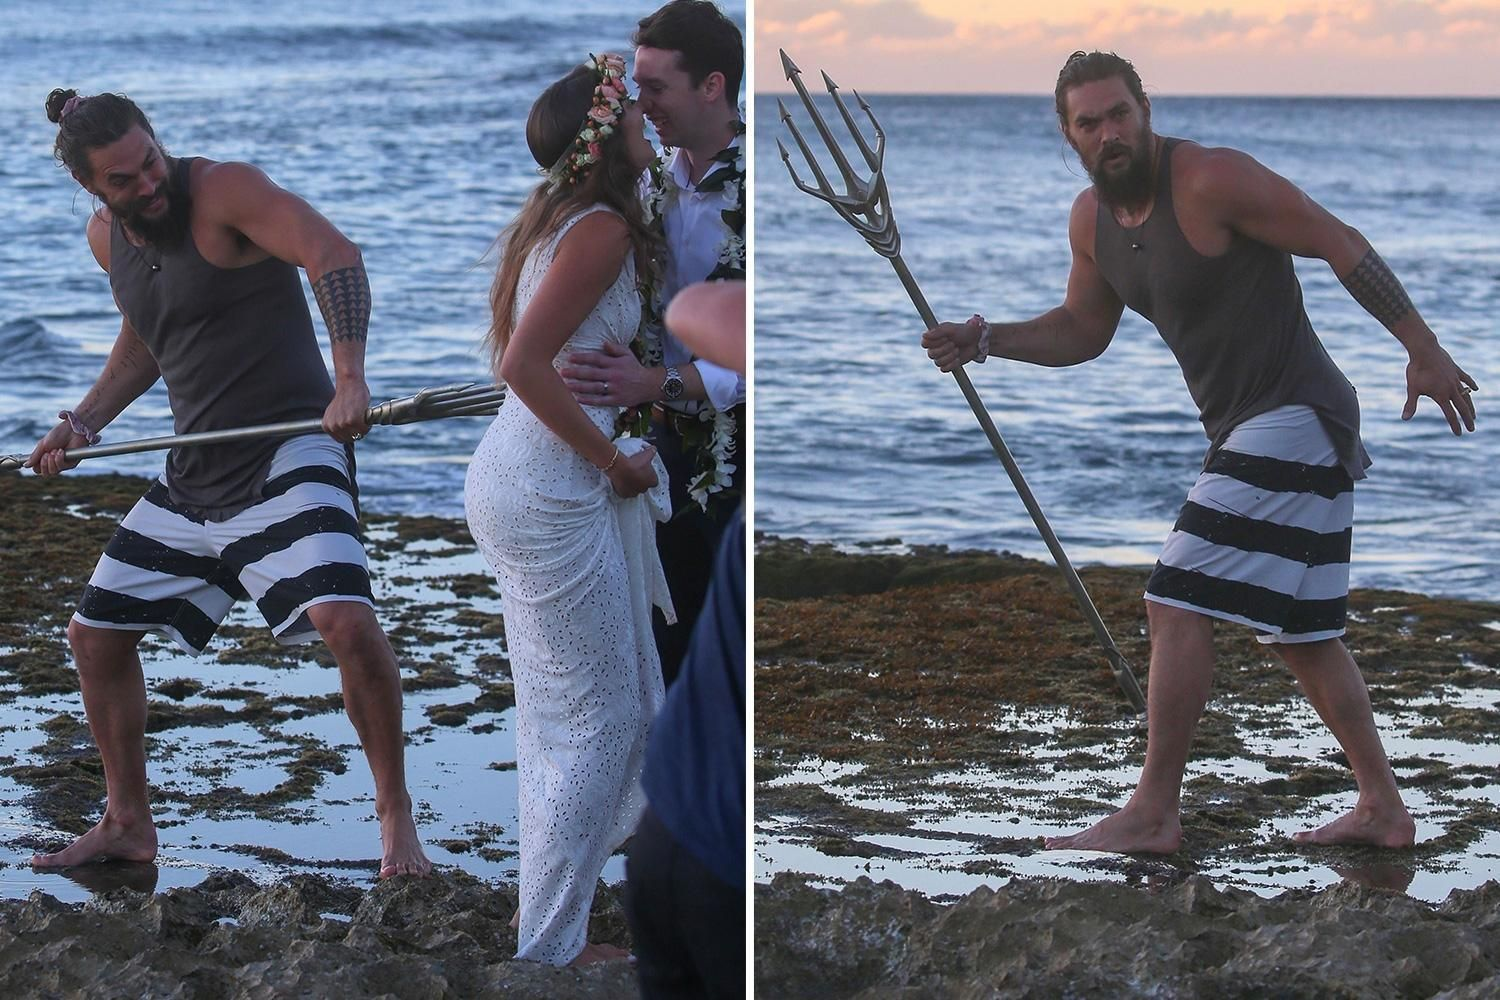 Jason Momoa photobombing wedding photos